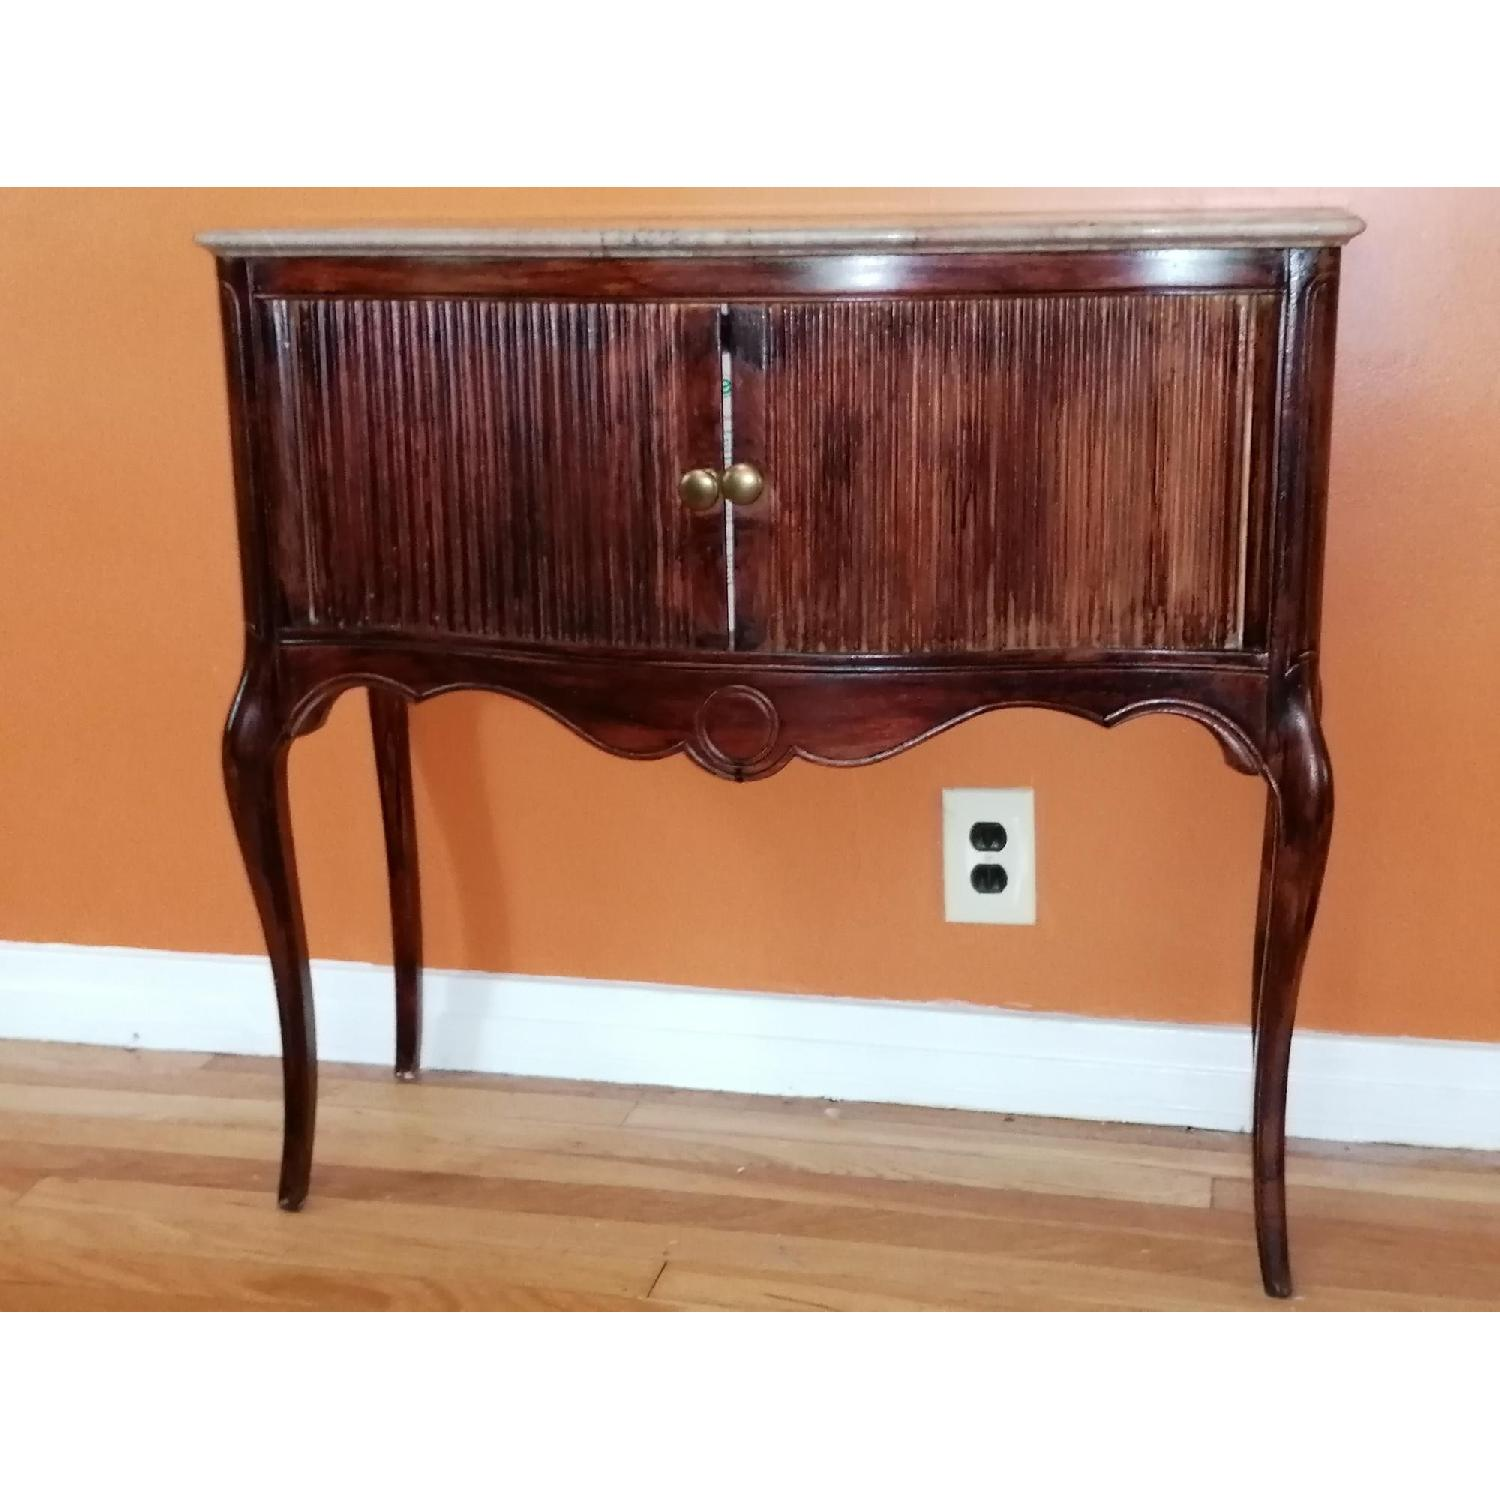 Vintage Rolling Accordion Door Cabinet/Side Table - image-1